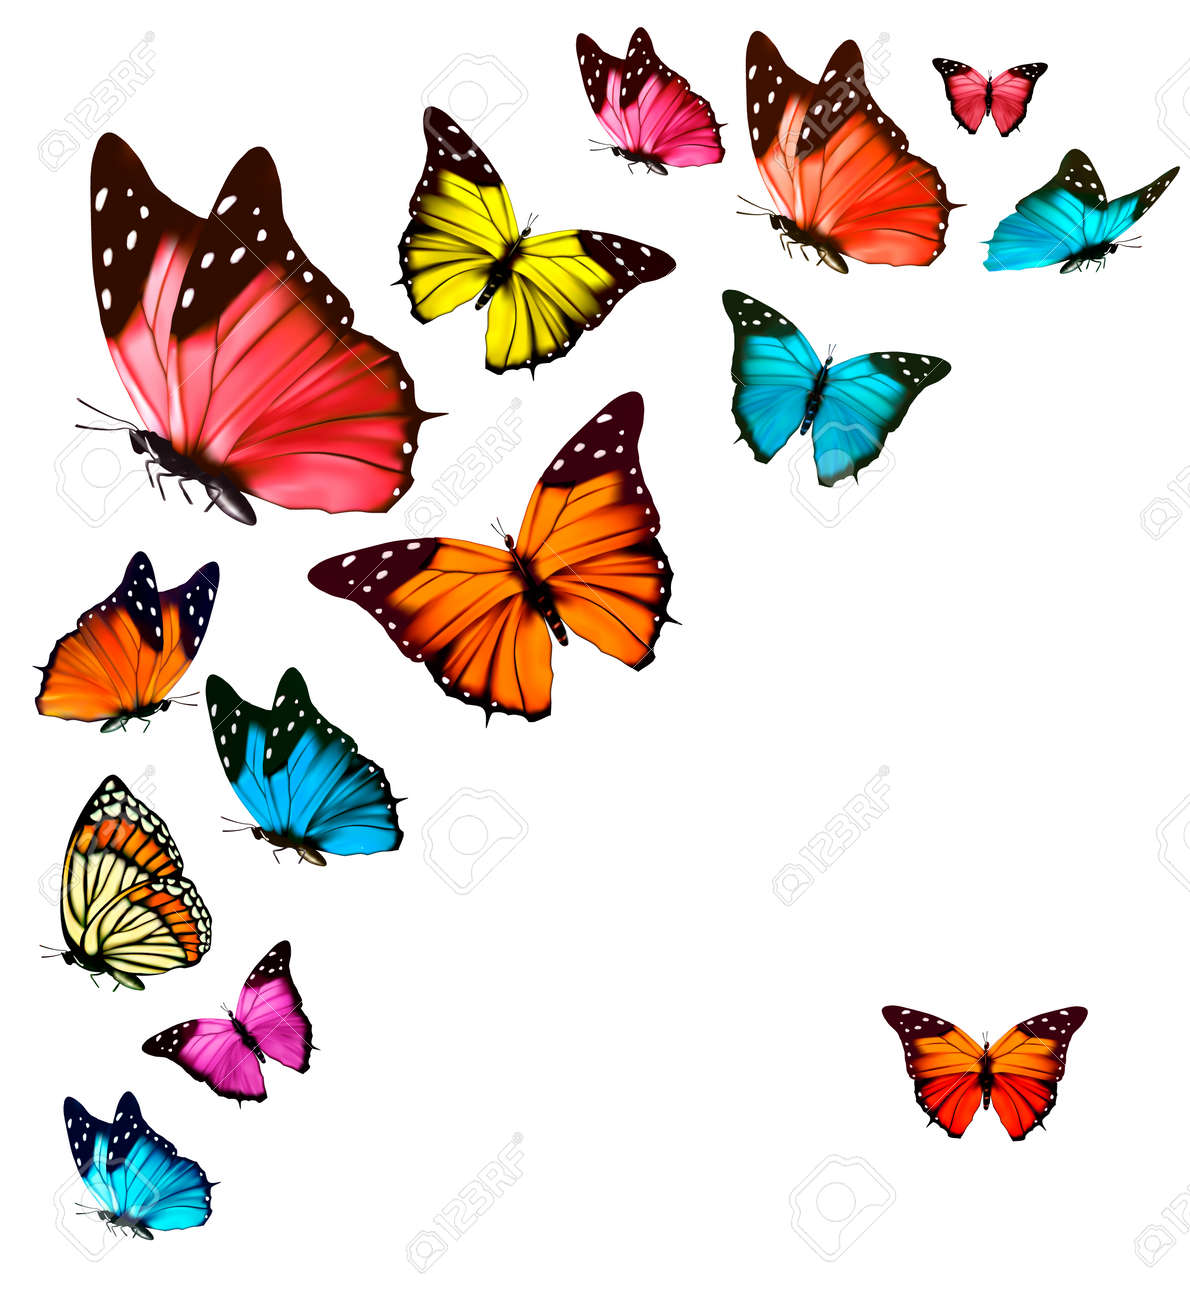 Pink butterfly vector background hd wallpapers pink butterfly vector - Background With Colorful Butterflies Vector Stock Vector 37553429